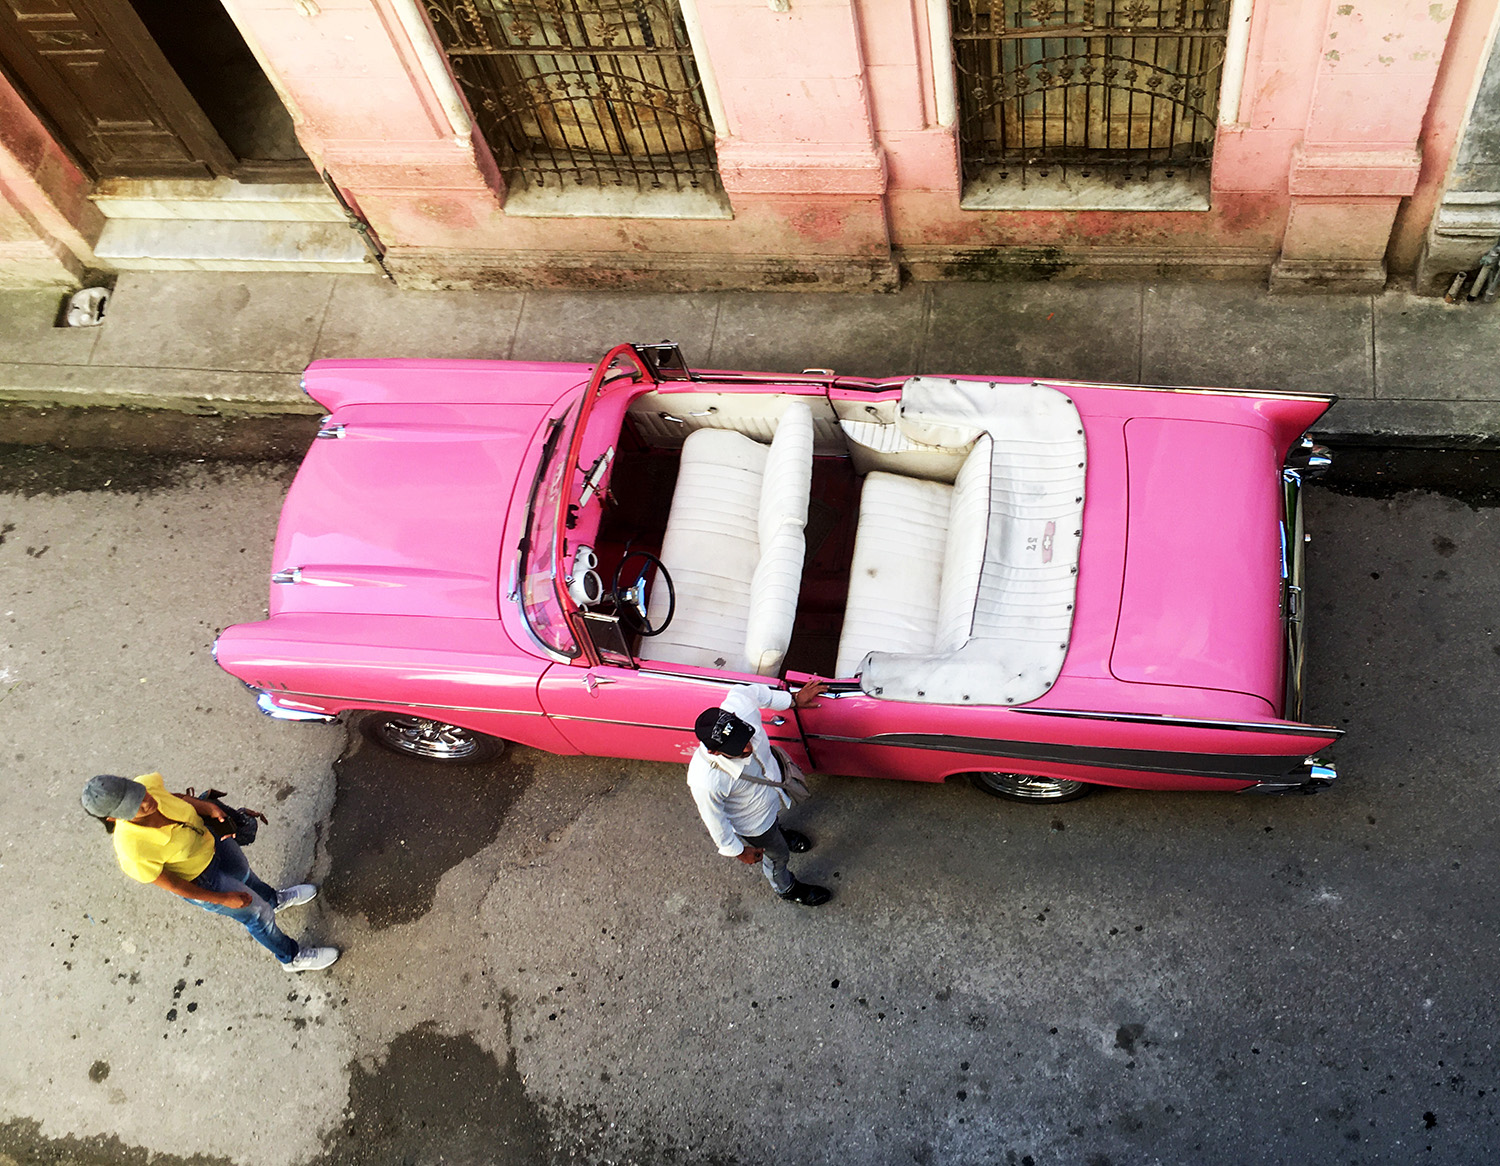 An aerial view of an old pink Impala.